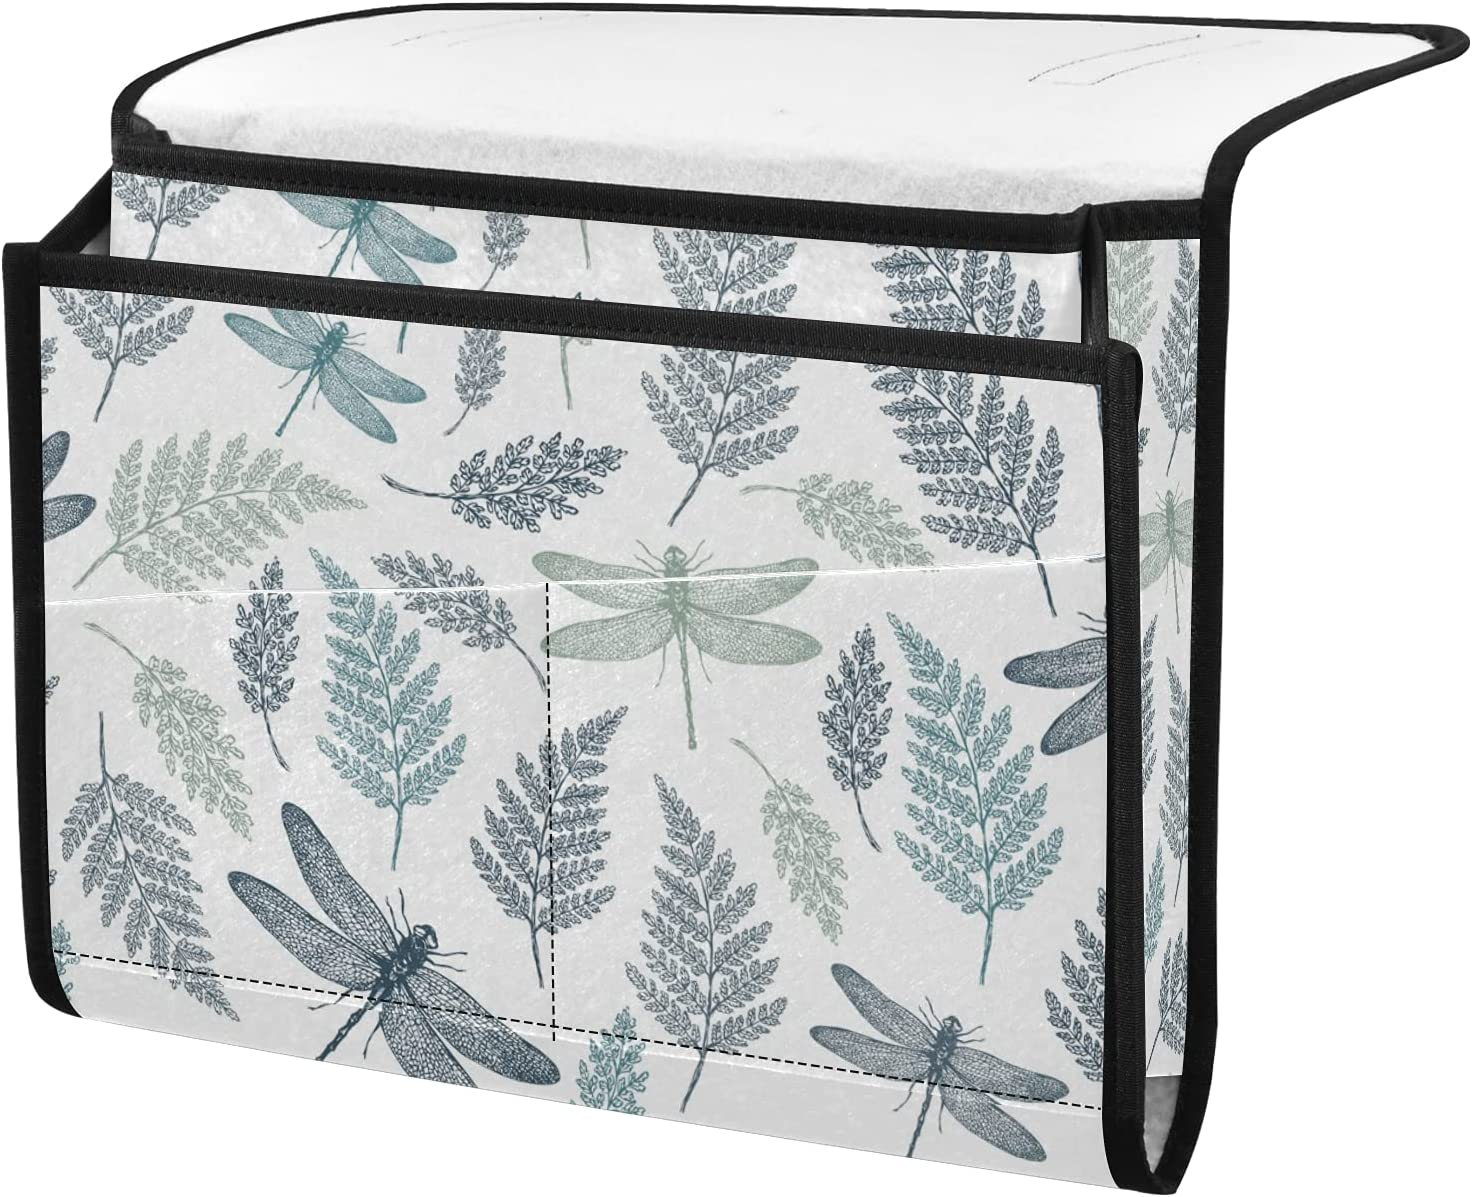 senya Dragonfly and Leaves Cad Limited time cheap sale Bedside Very popular Storage Organizer